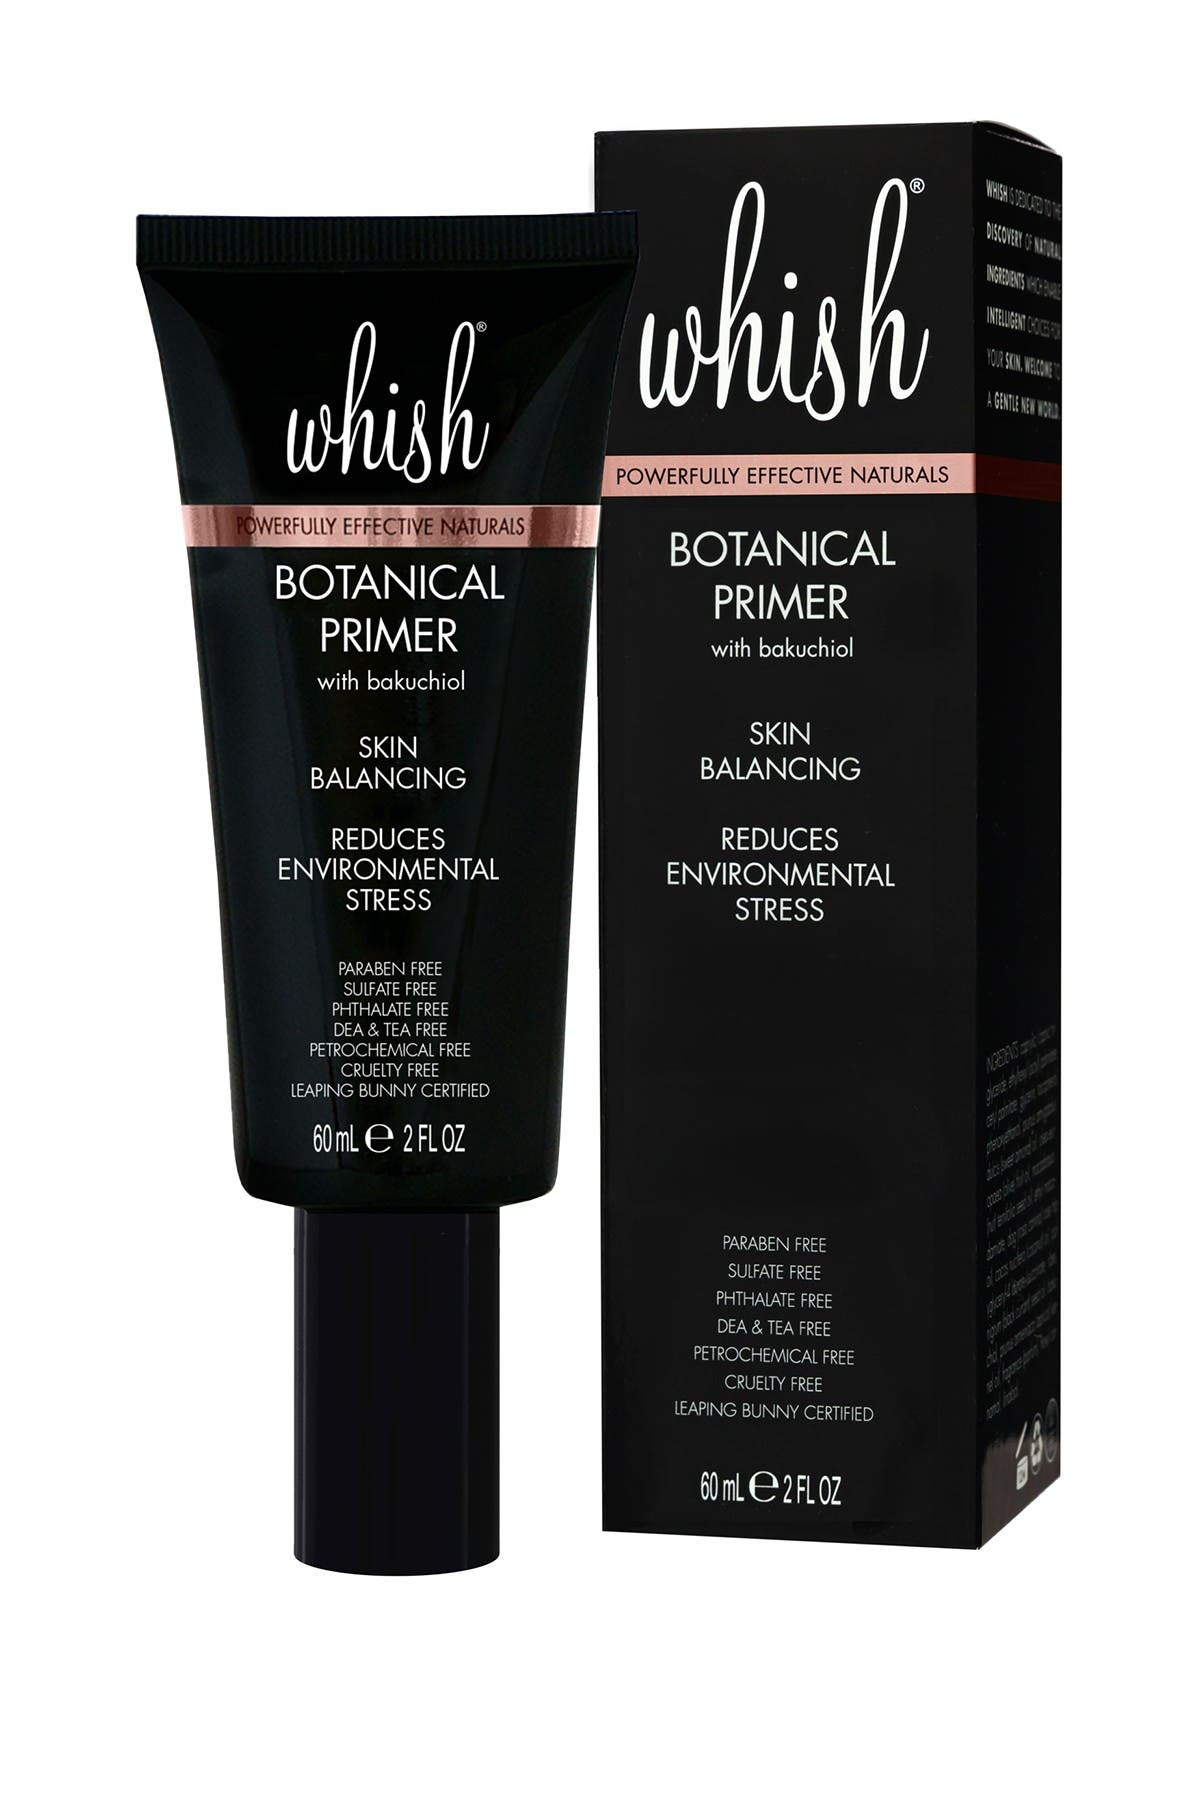 Image of Whish Botancial Primer with Bakuchiol - Size 2 oz.